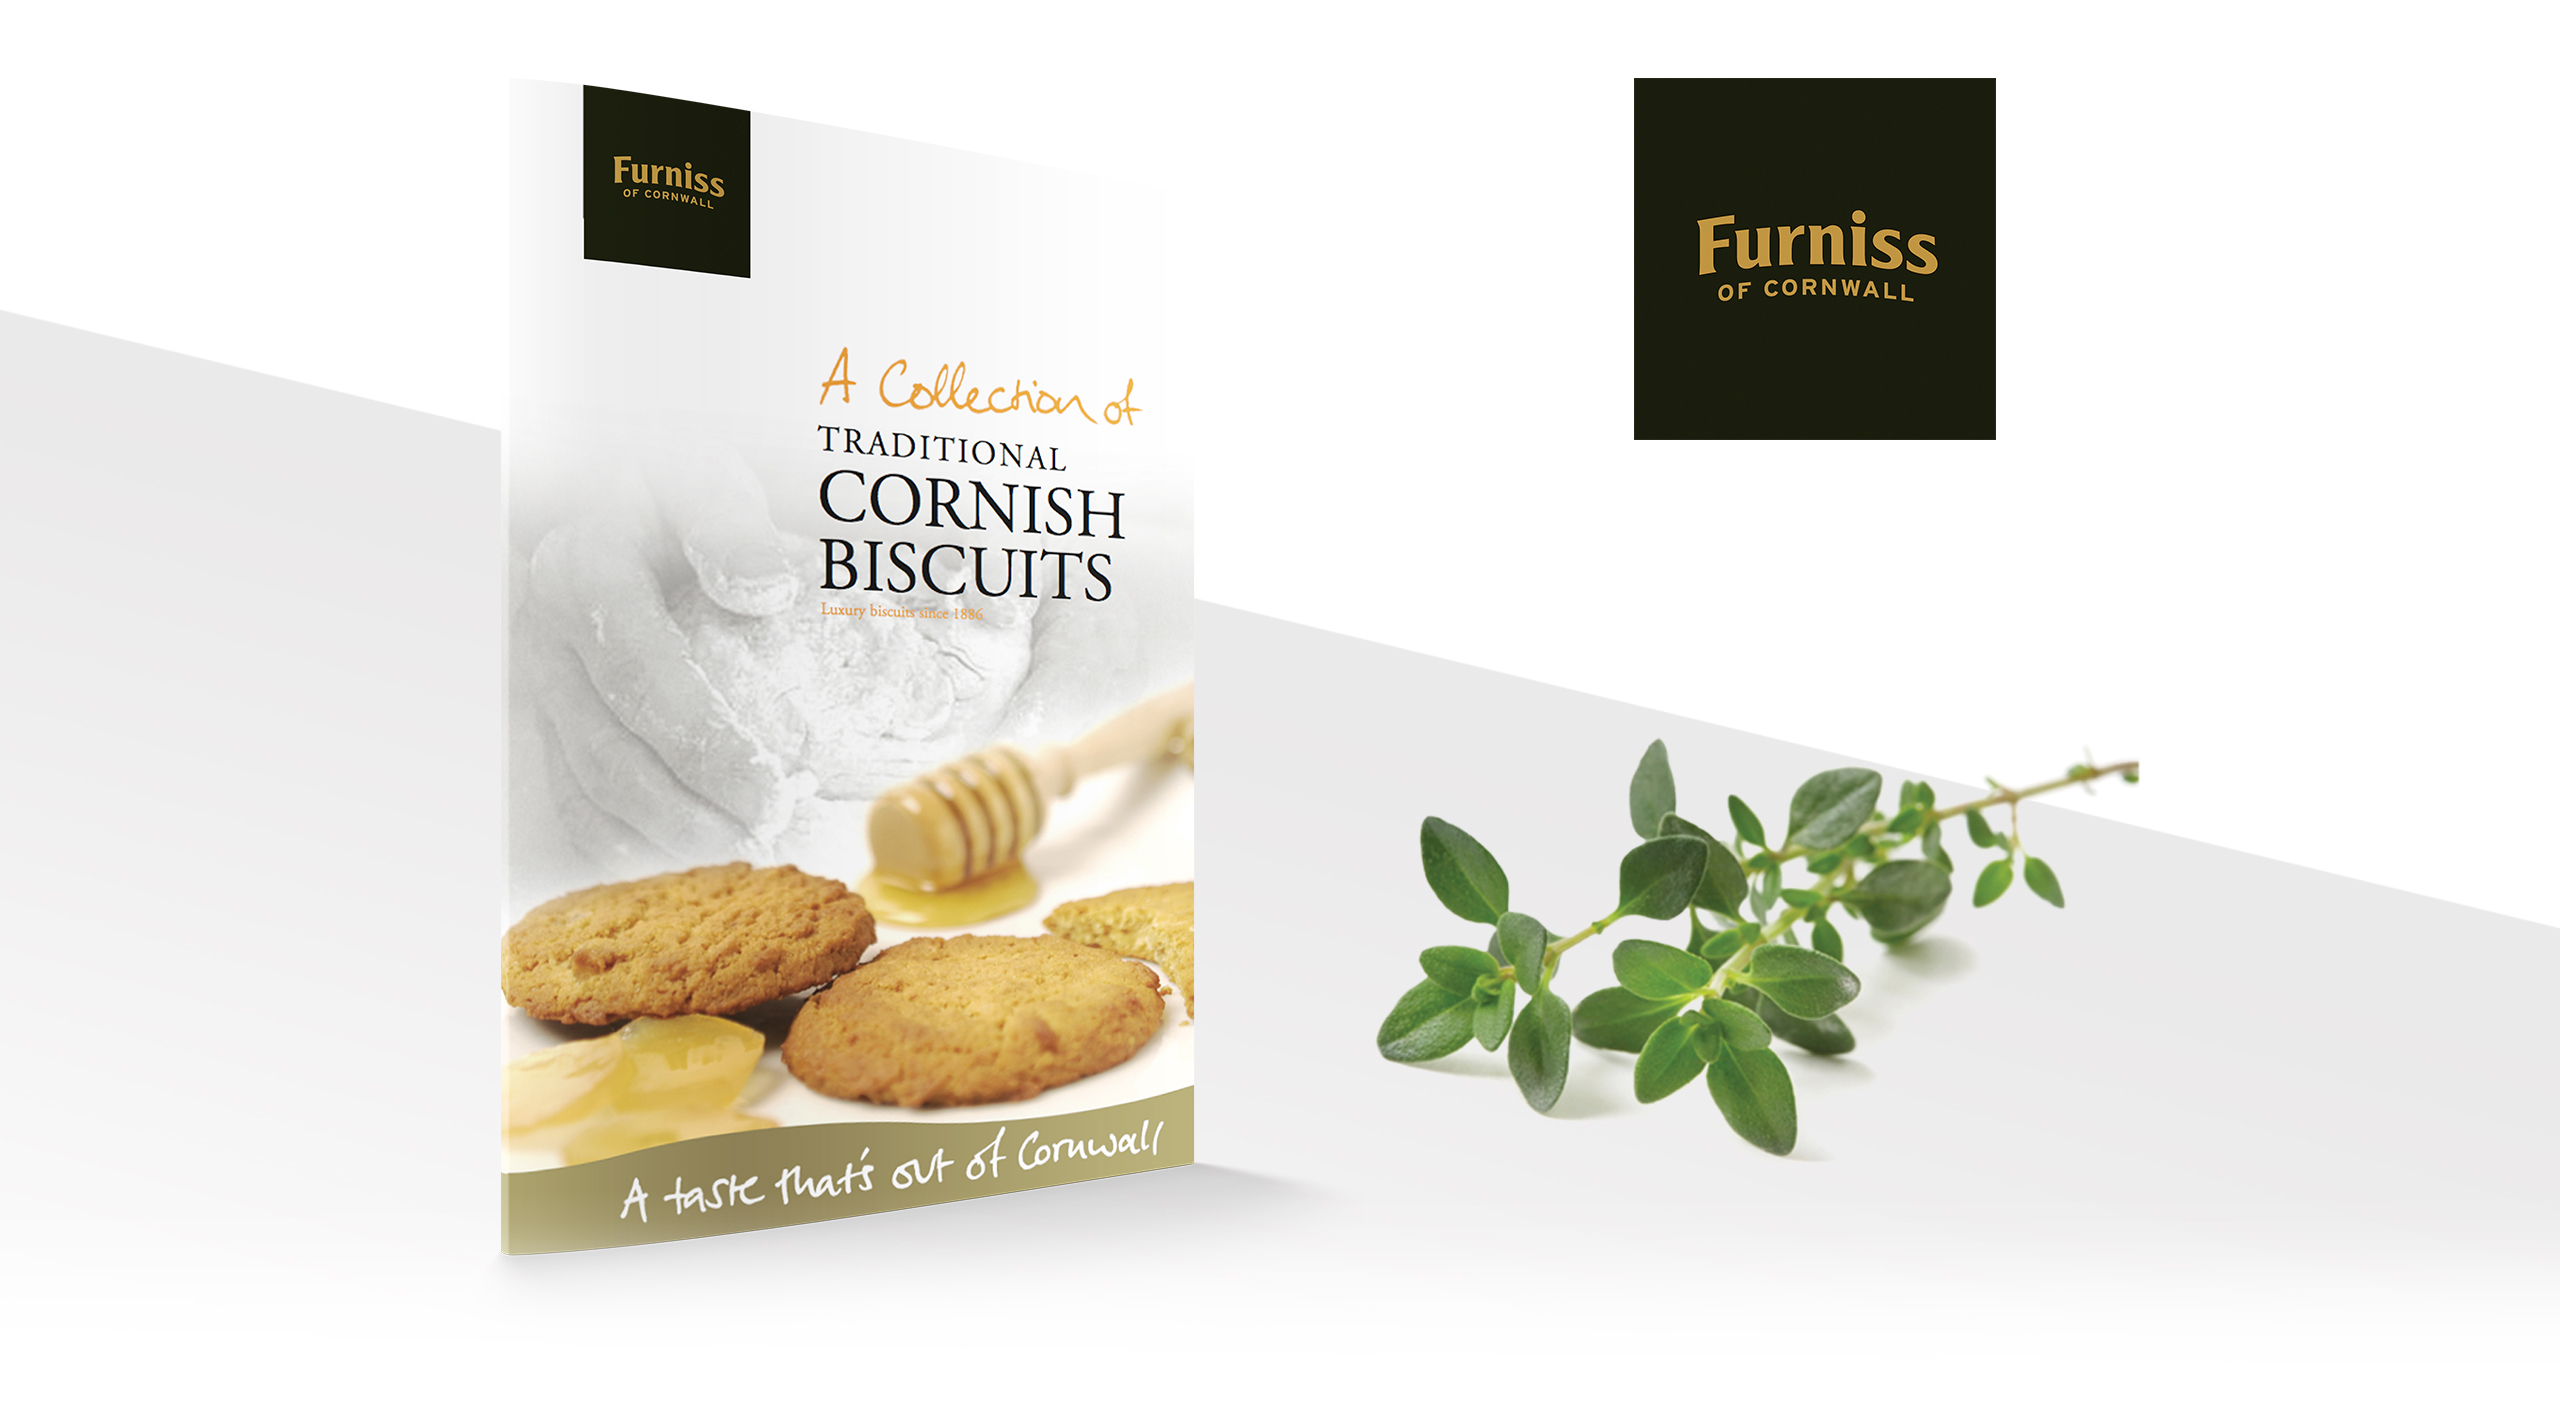 furniss logo next to printed promotional material for traditional cornish biscuits